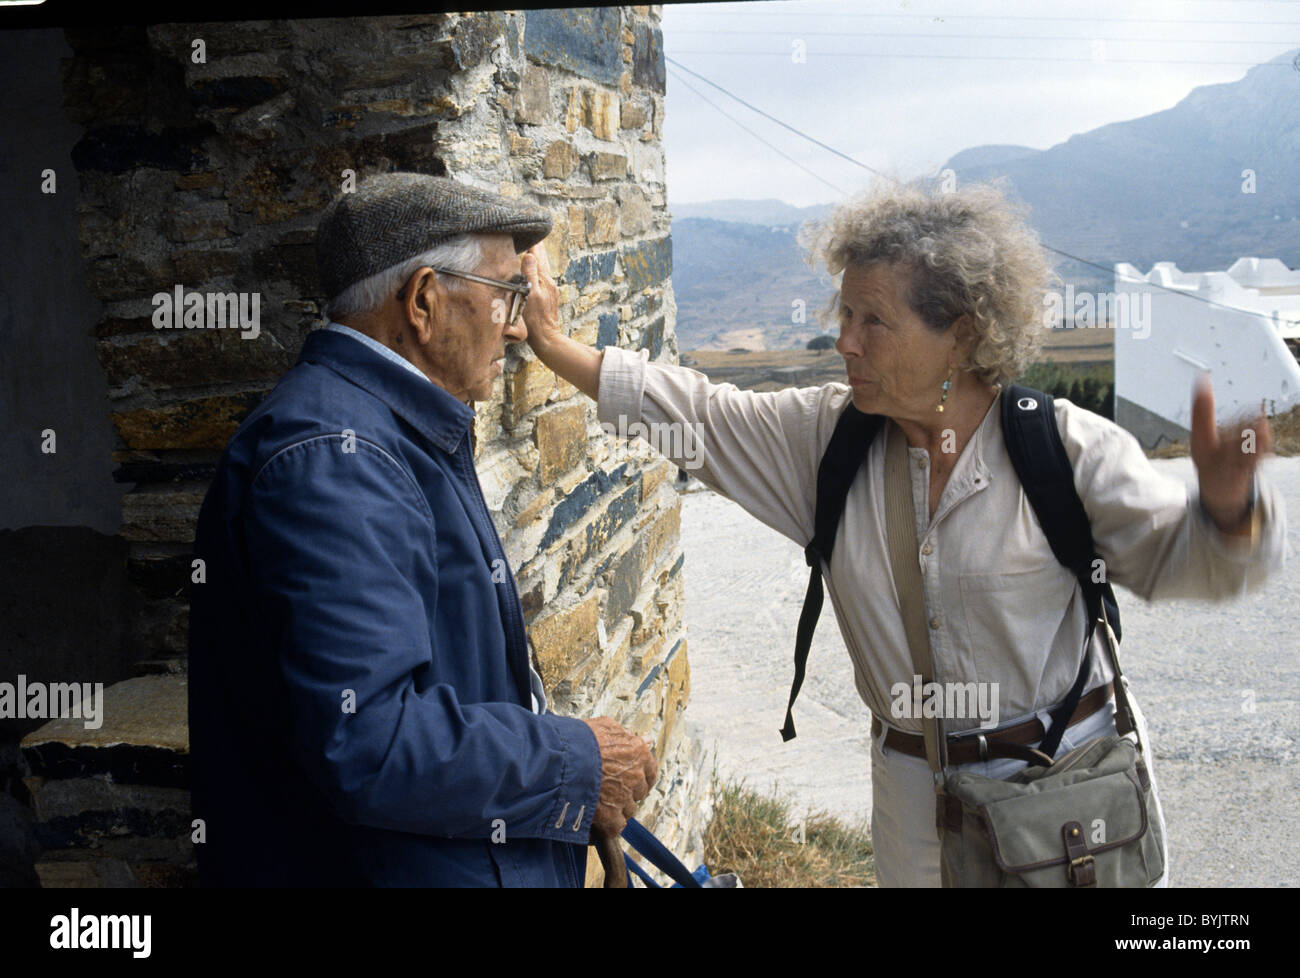 elderly English woman talking with a old Greek local man in Greece - Stock Image